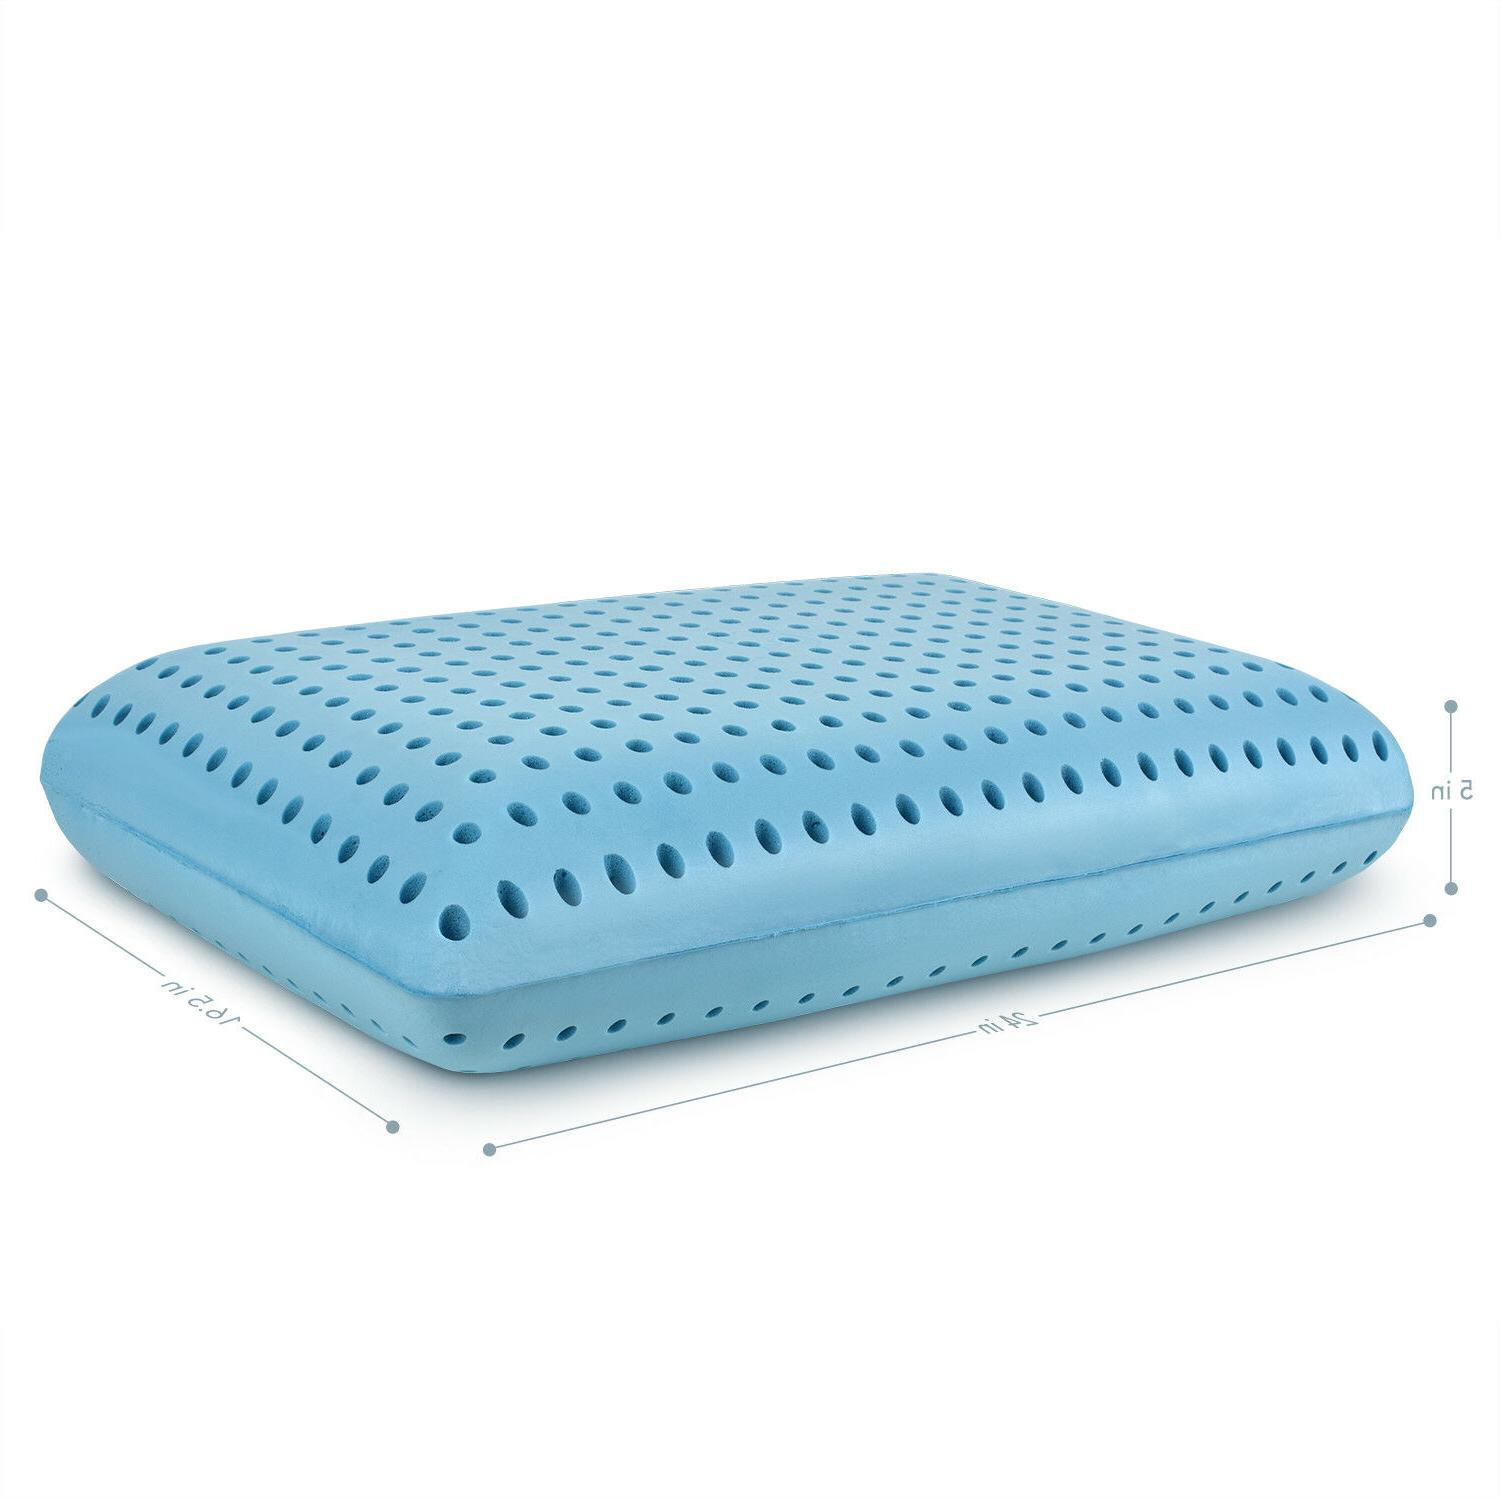 Cooling Memory - Ventilated Bed Pillow Infused Cooling Gel